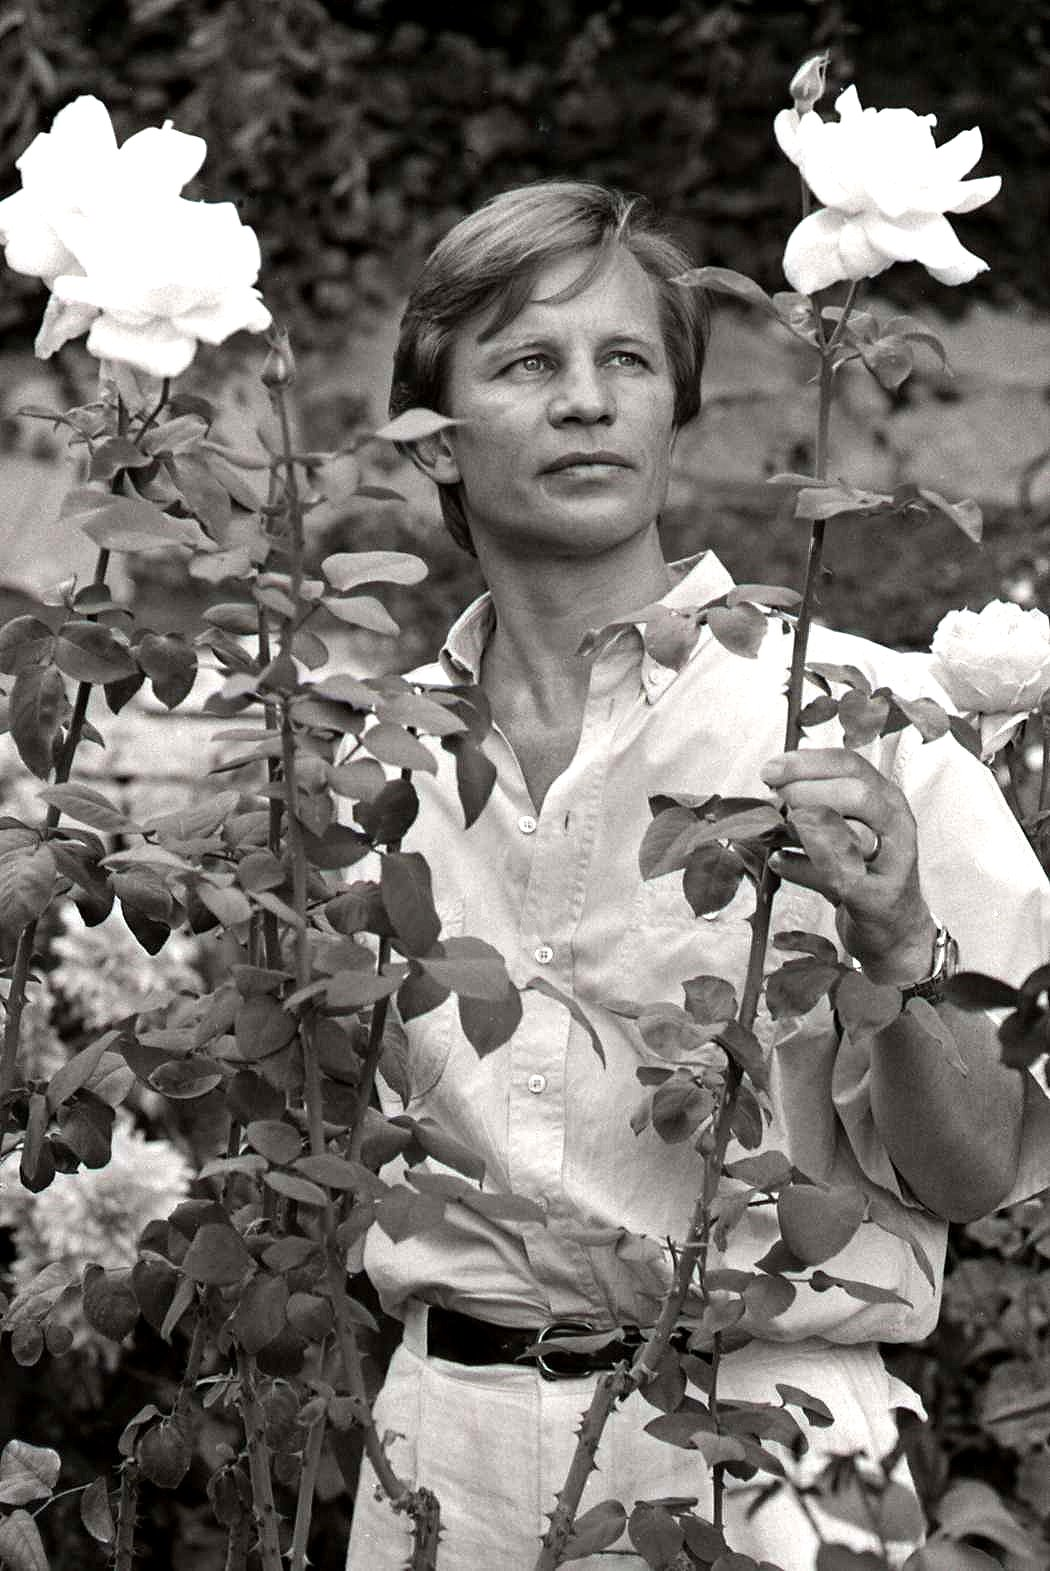 Michael_York_%26_york_roses_Allan_Warren